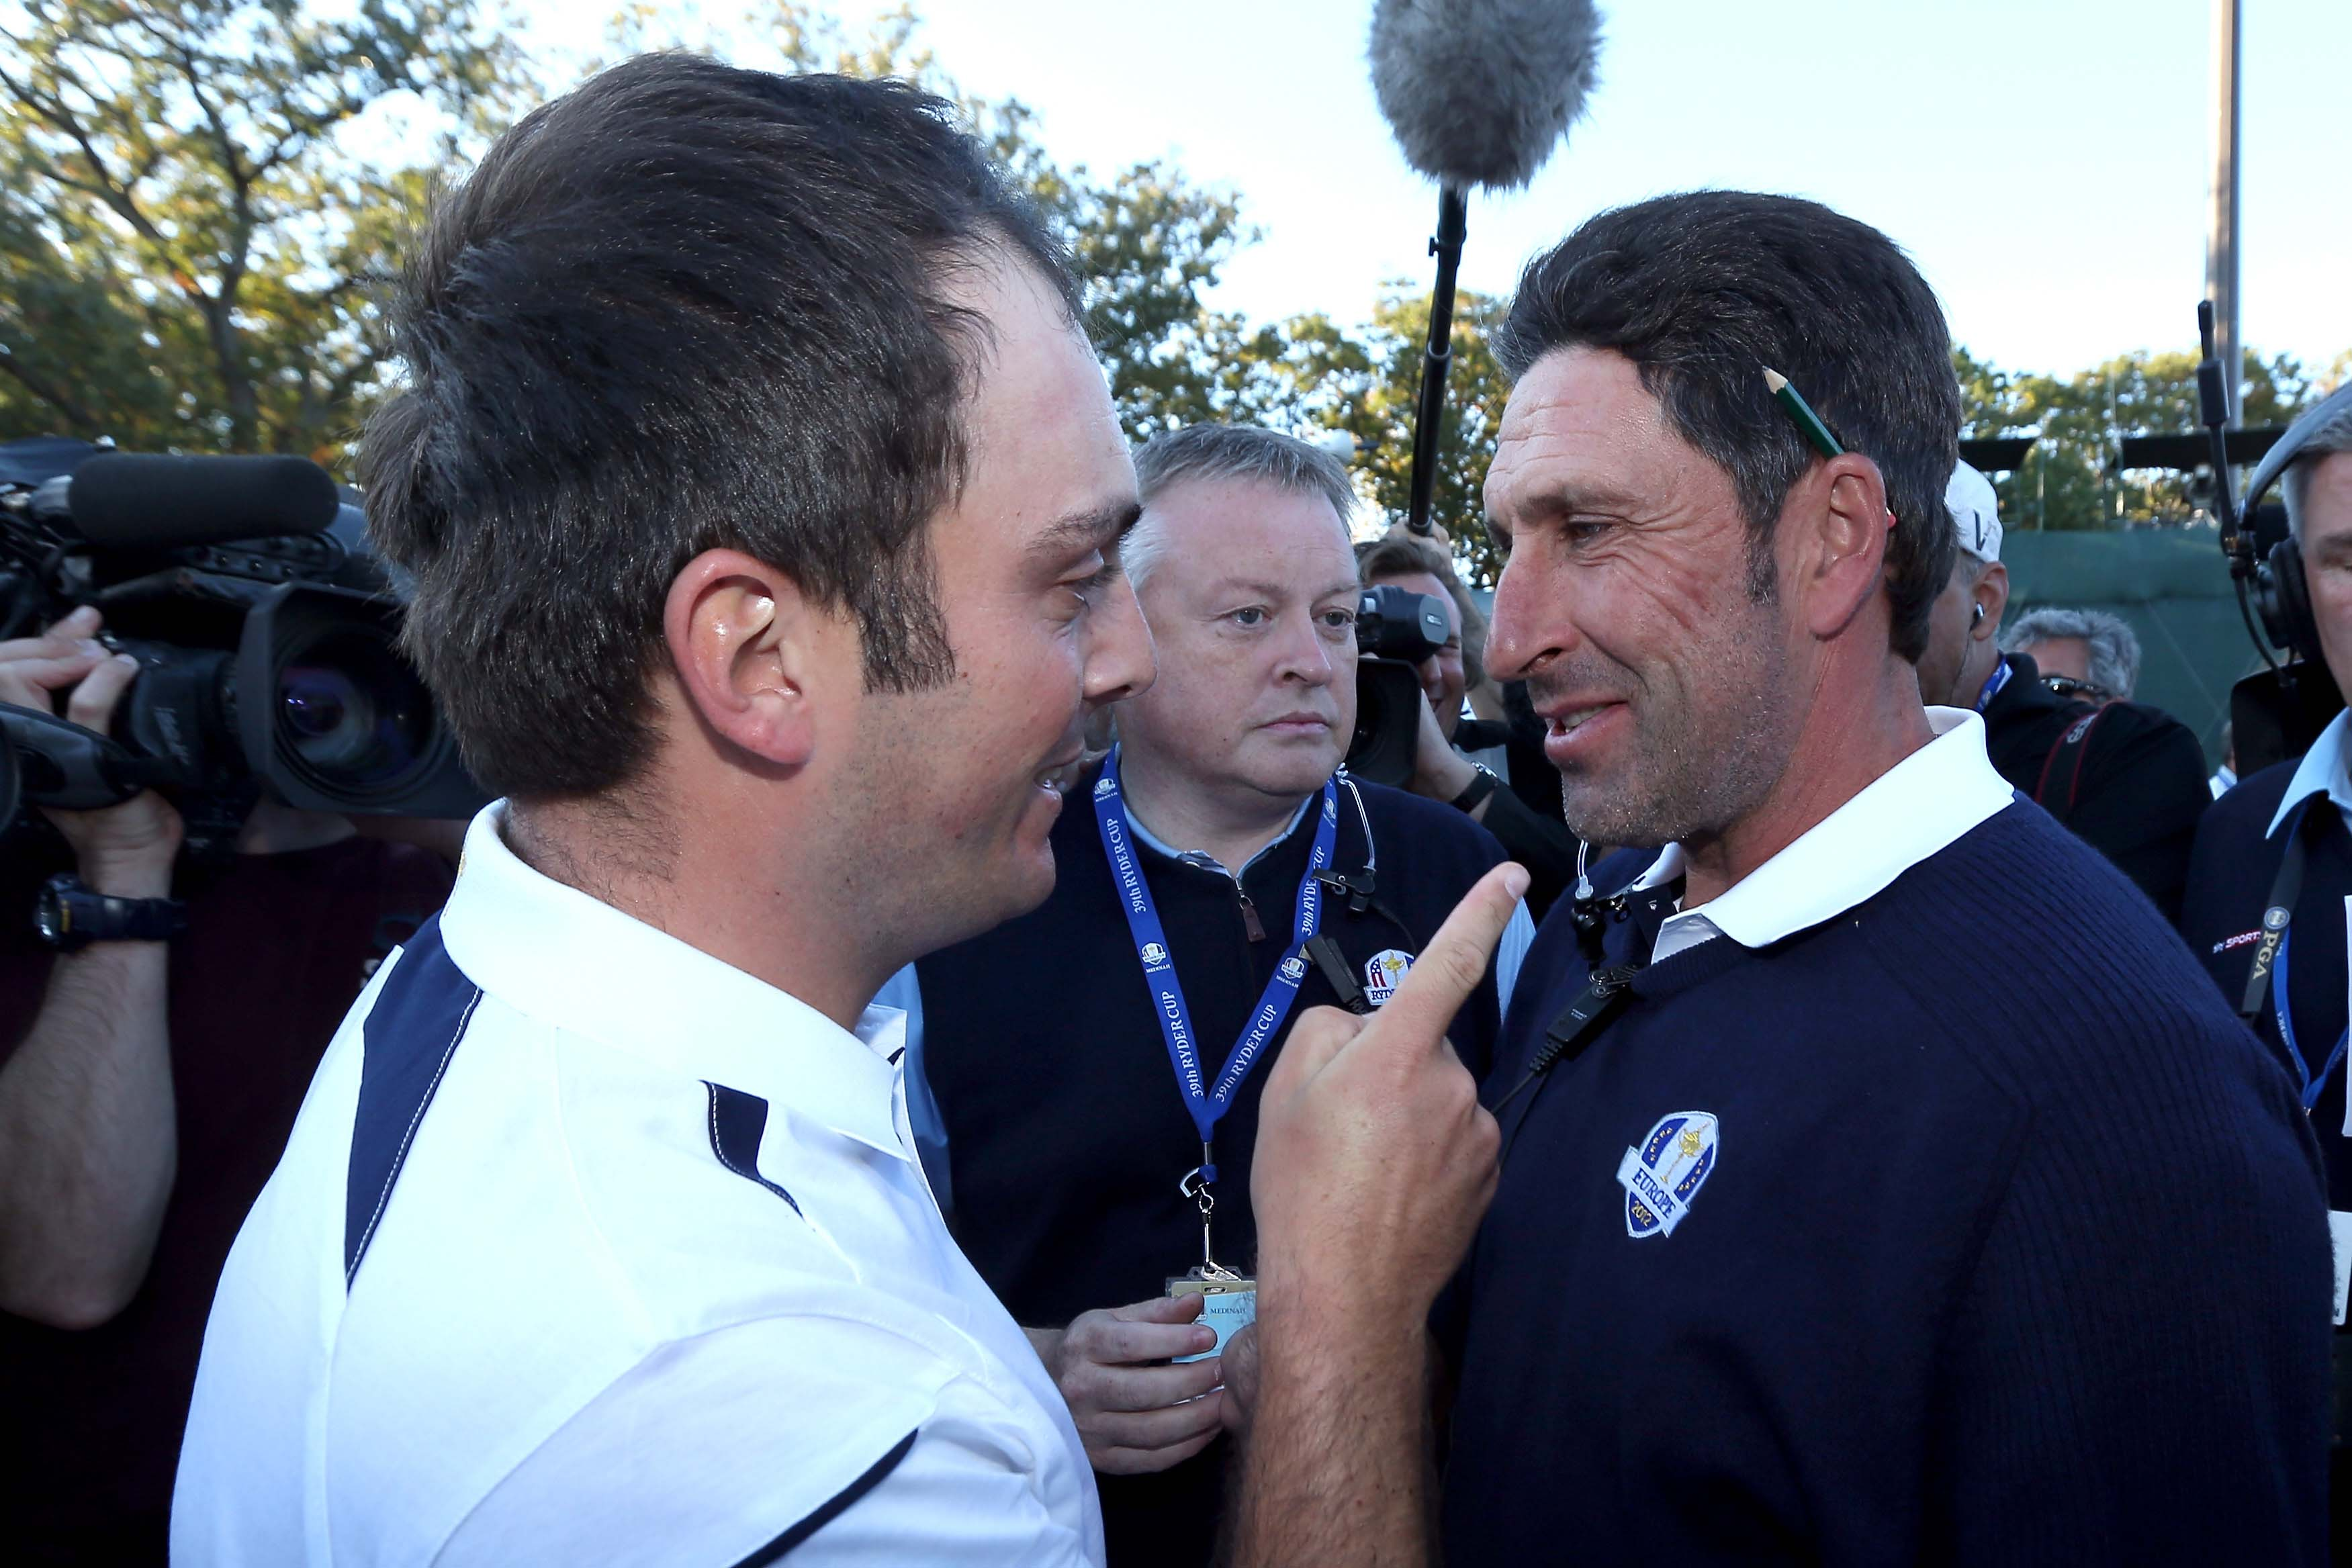 Francesco Molinari and Jose Maria Olazabal